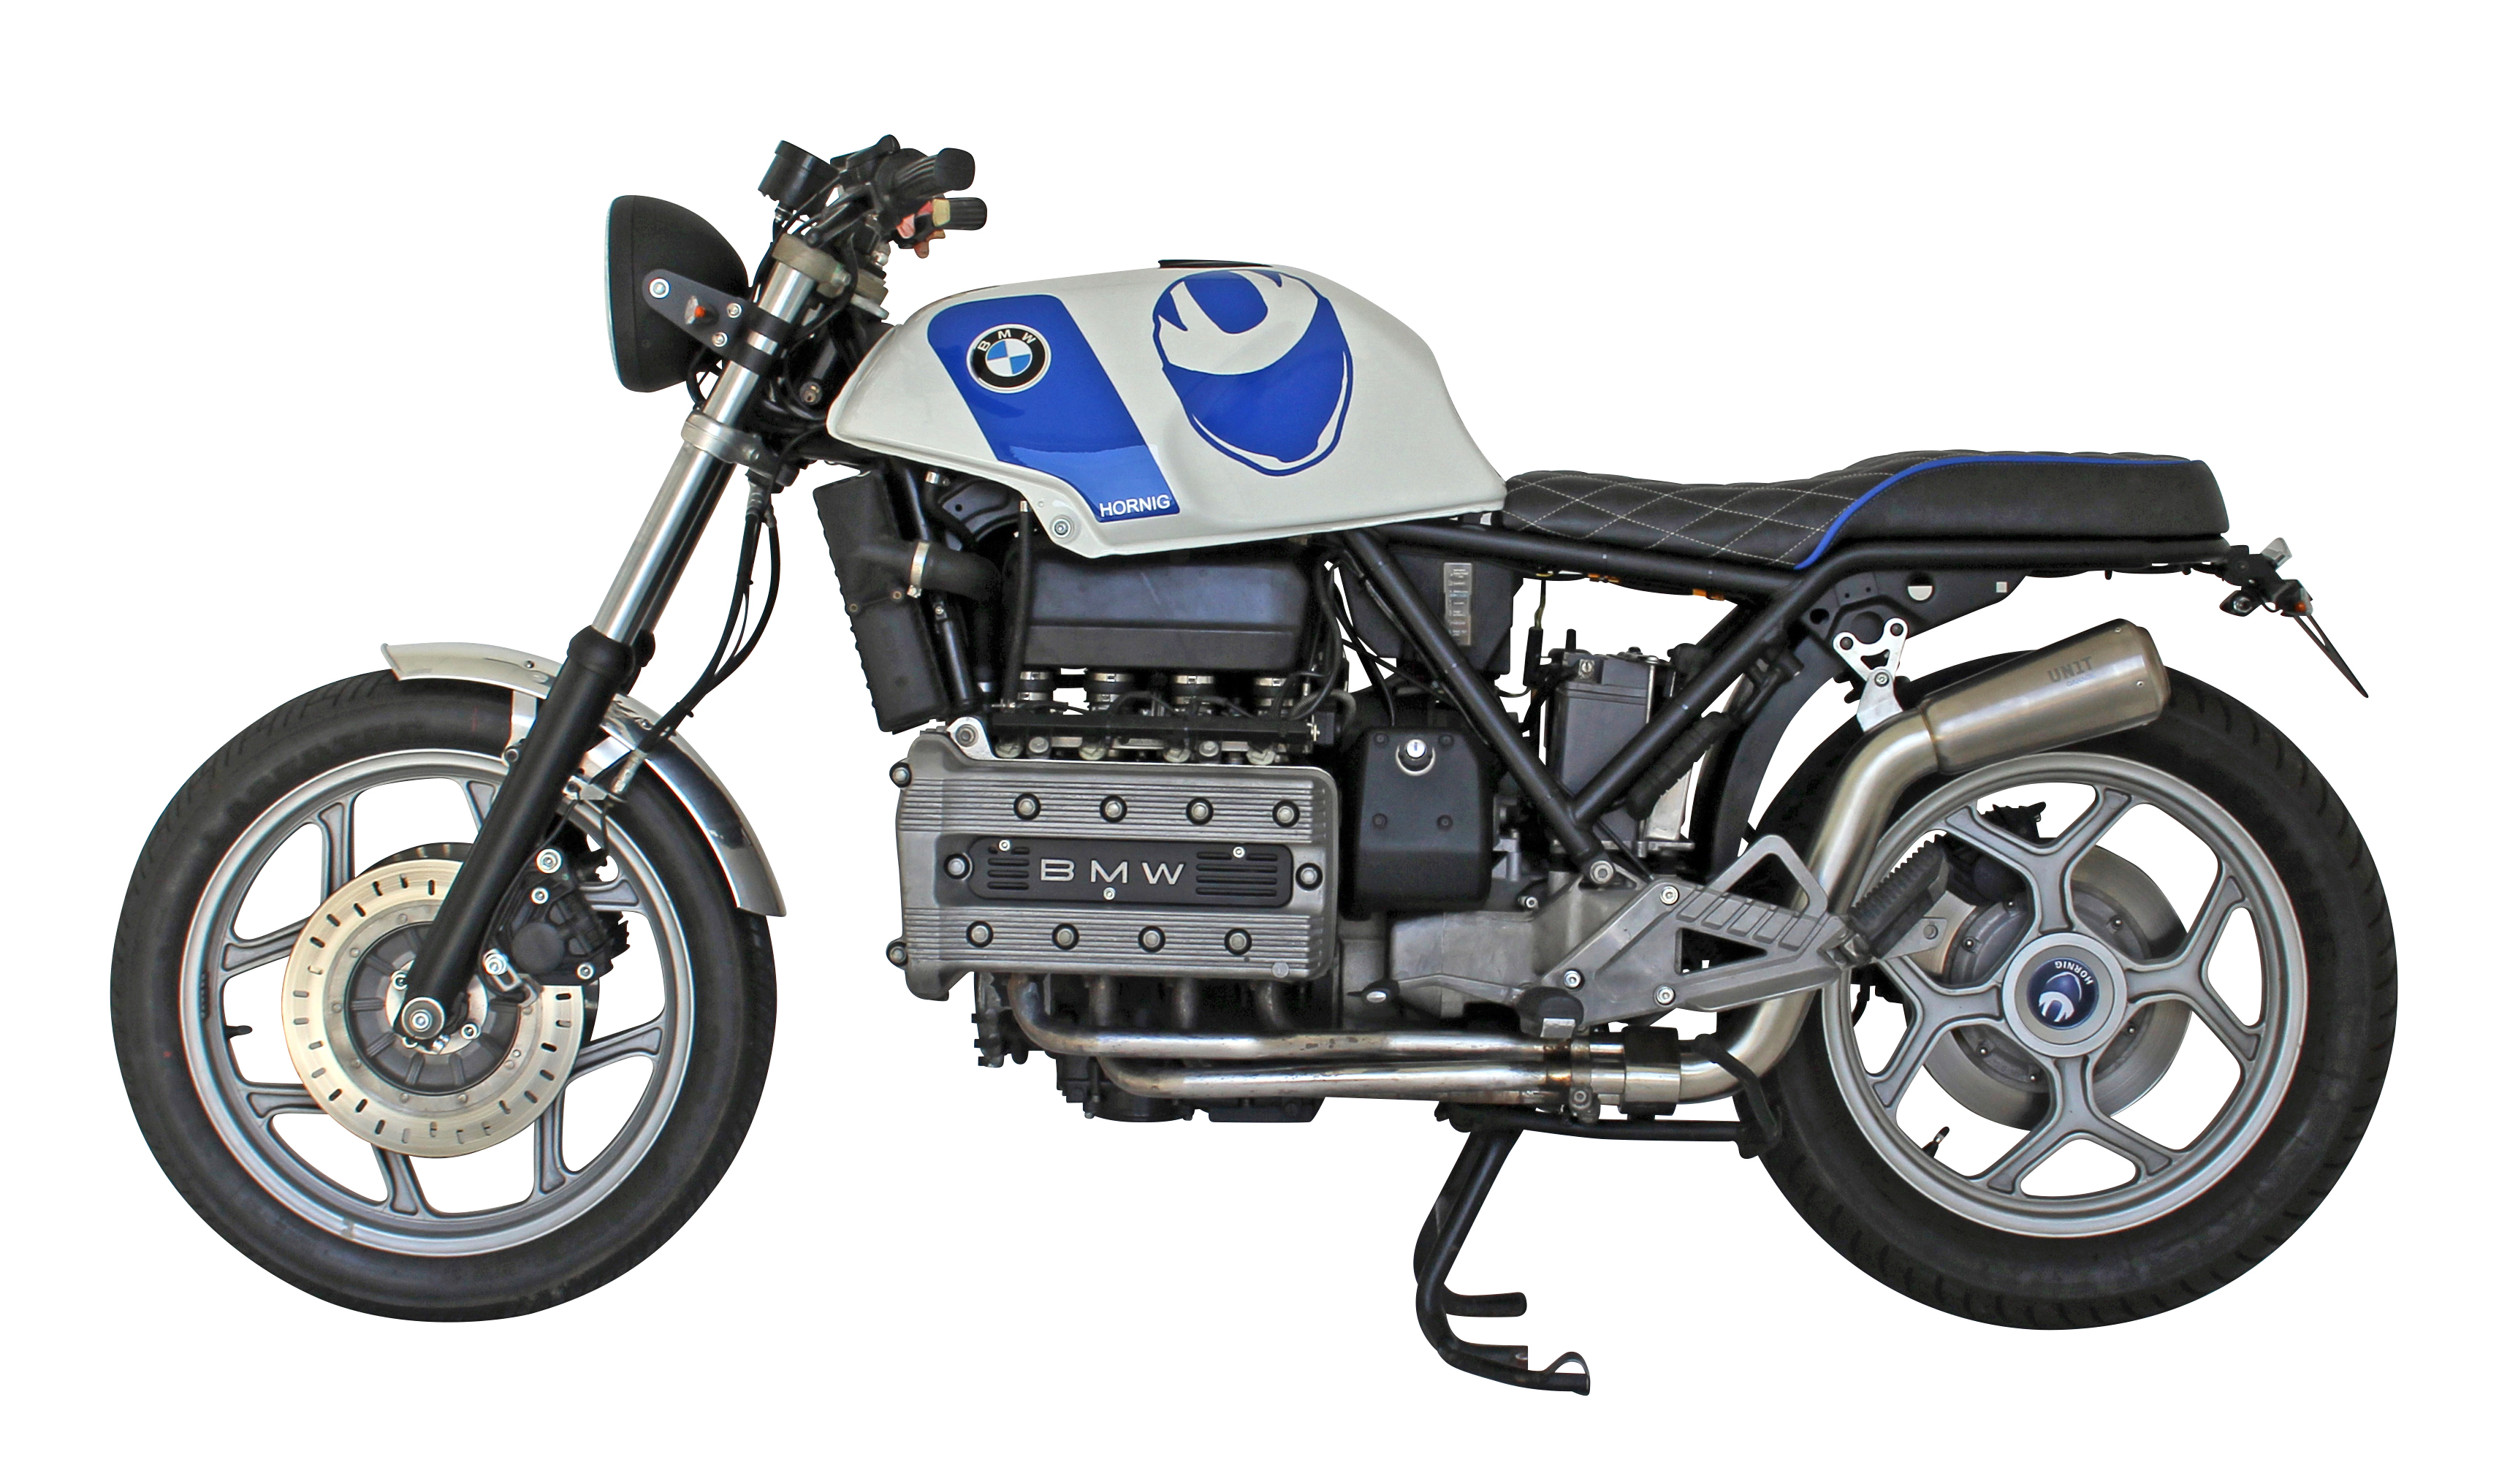 Bmw K100rs Cafe Racer By Hornig Trendy Retro Look With Tuv Approval Motorcycle Accessory Hornig Parts For Your Bmw Motorrad